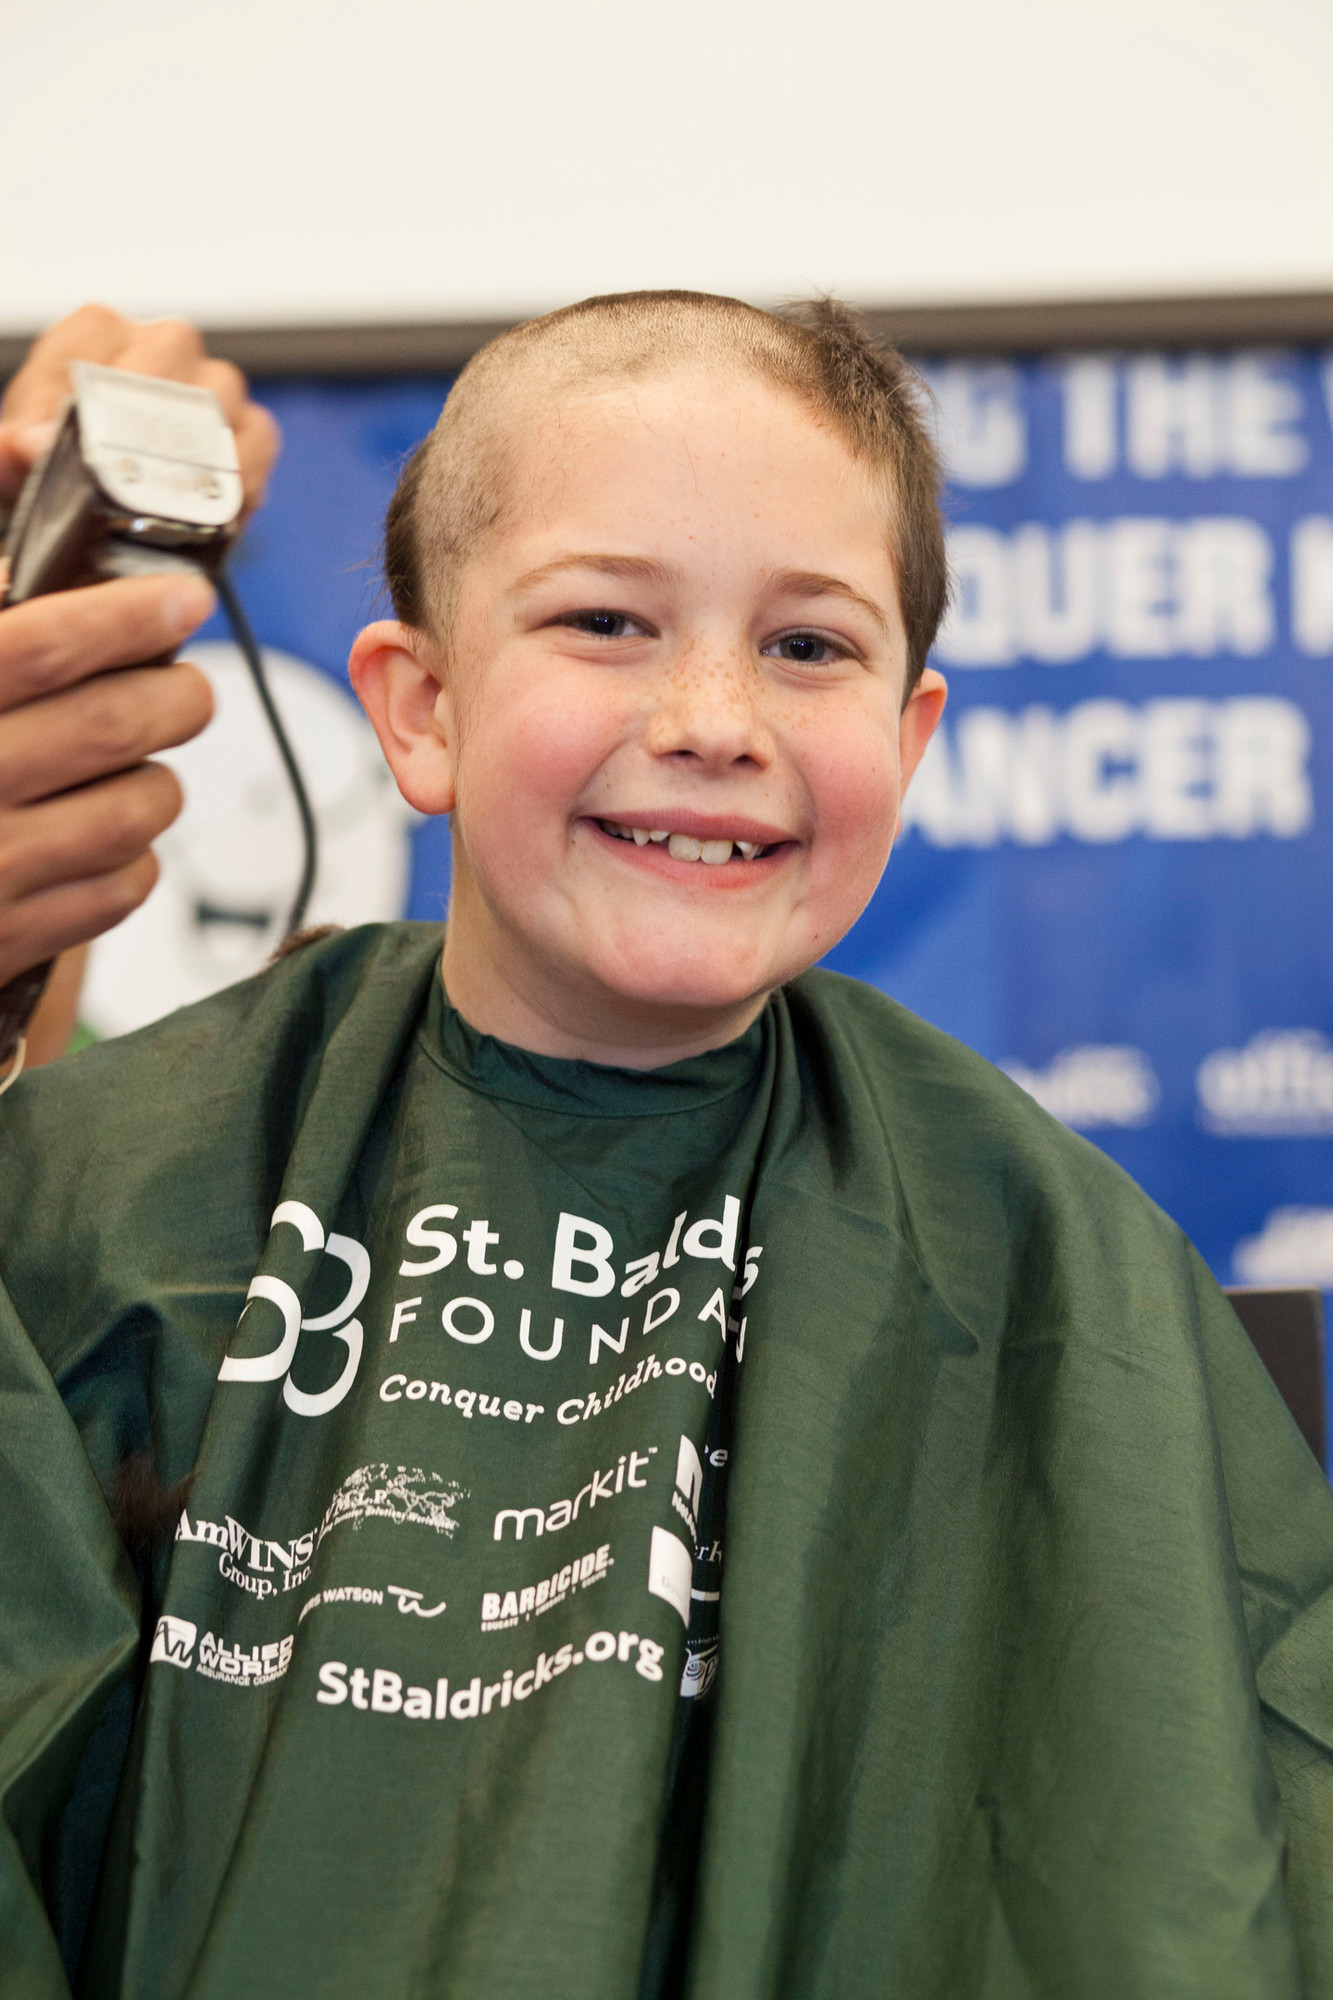 Eric Coferes was one of the many people that had their head shaved.